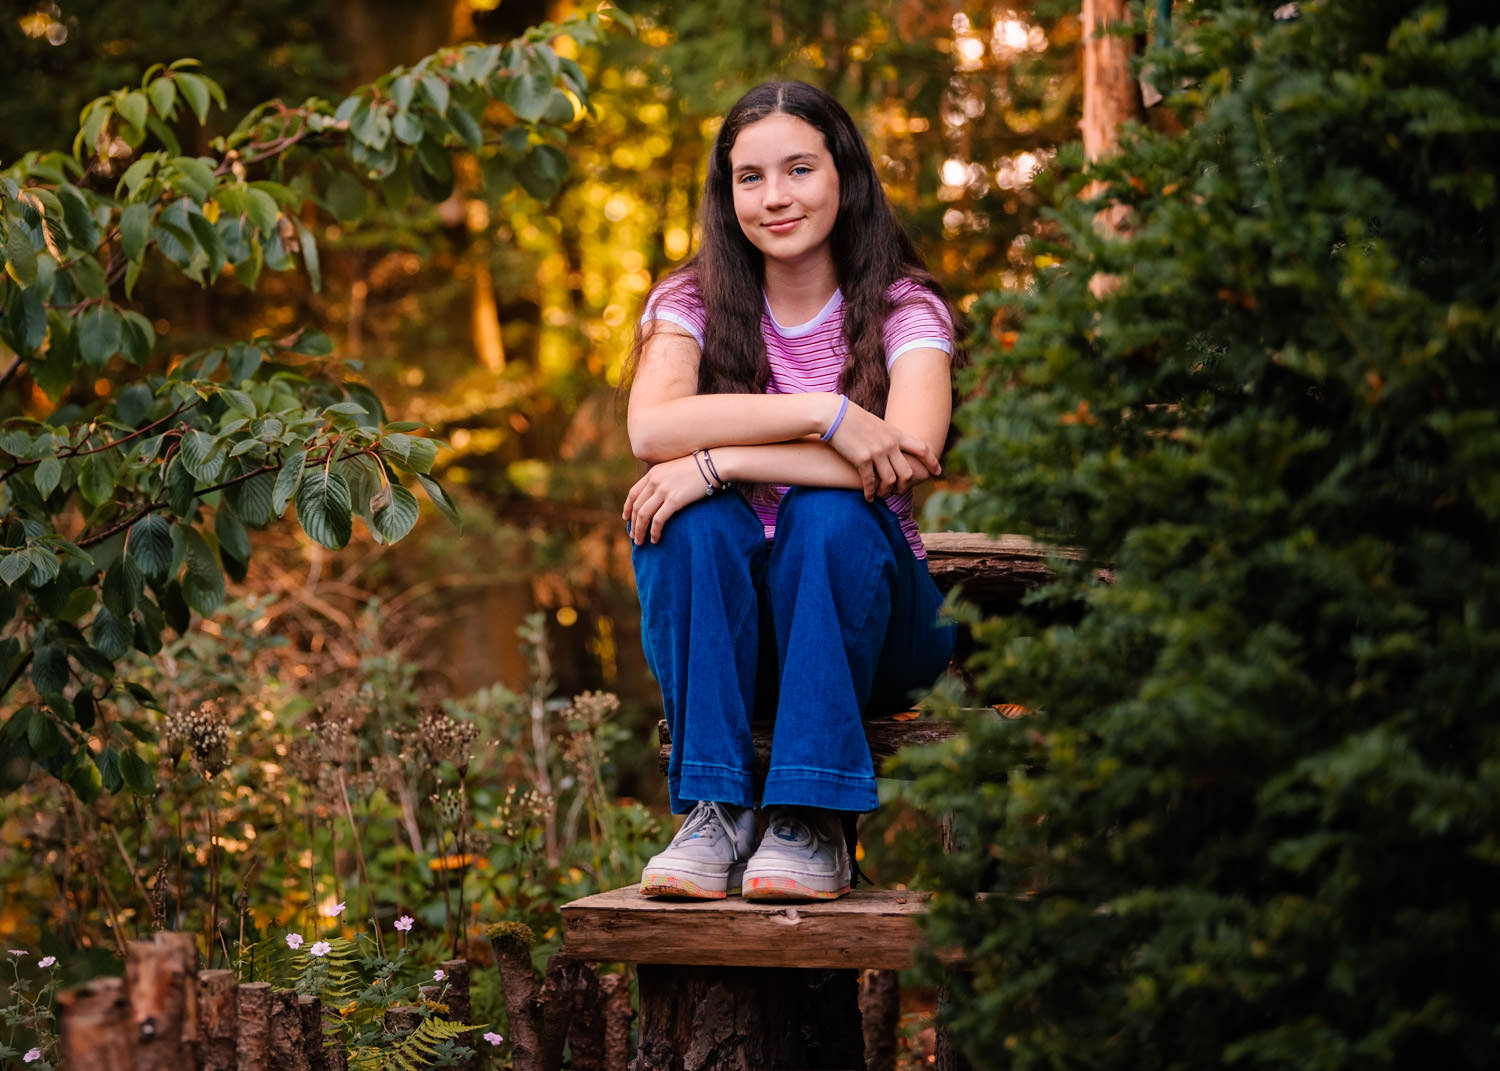 Teenage girl sat on wooden steps in an autumnal forest - photograph by Alexandra Tandy Photography